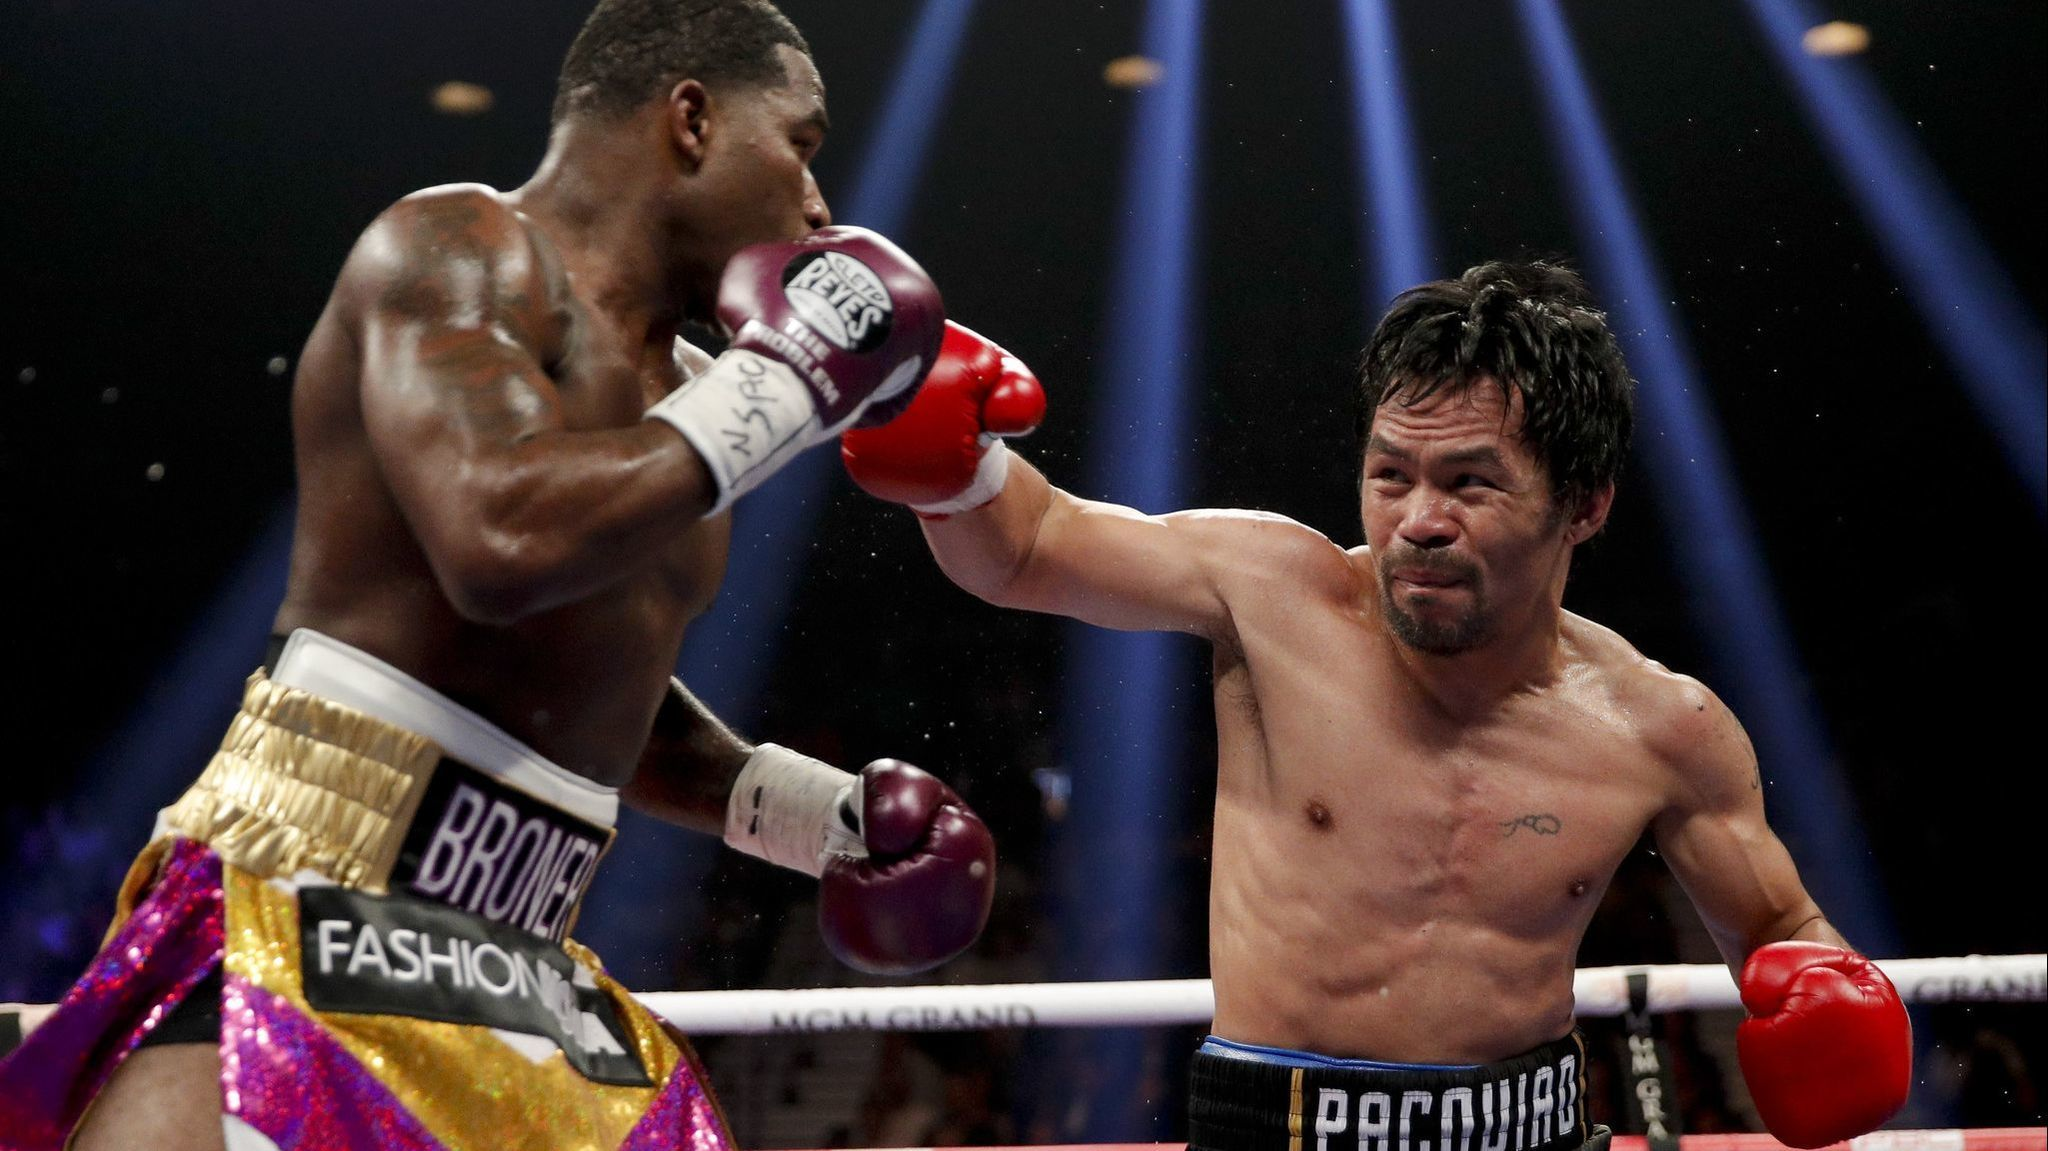 Manny Pacquiao defeats Adrien Broner to retain his welterweight belt, wants Floyd Mayweather